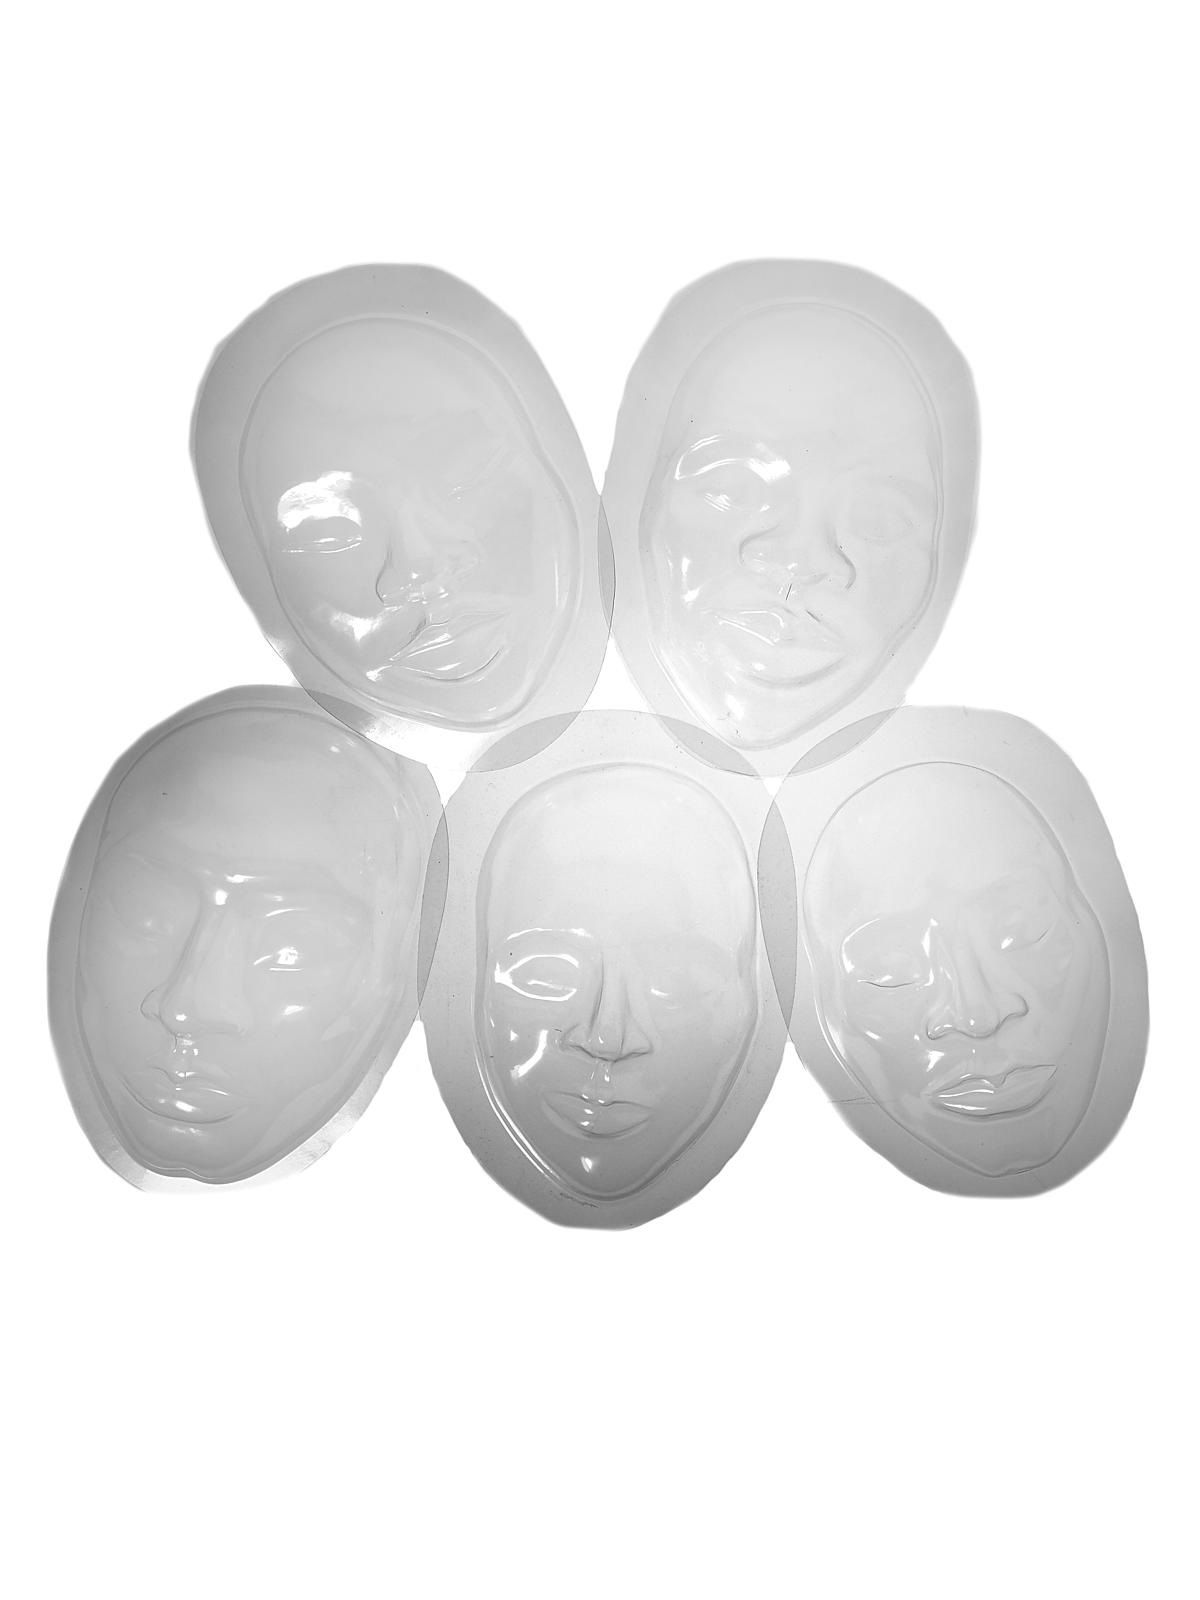 Face Forms 5 designs pack of 10